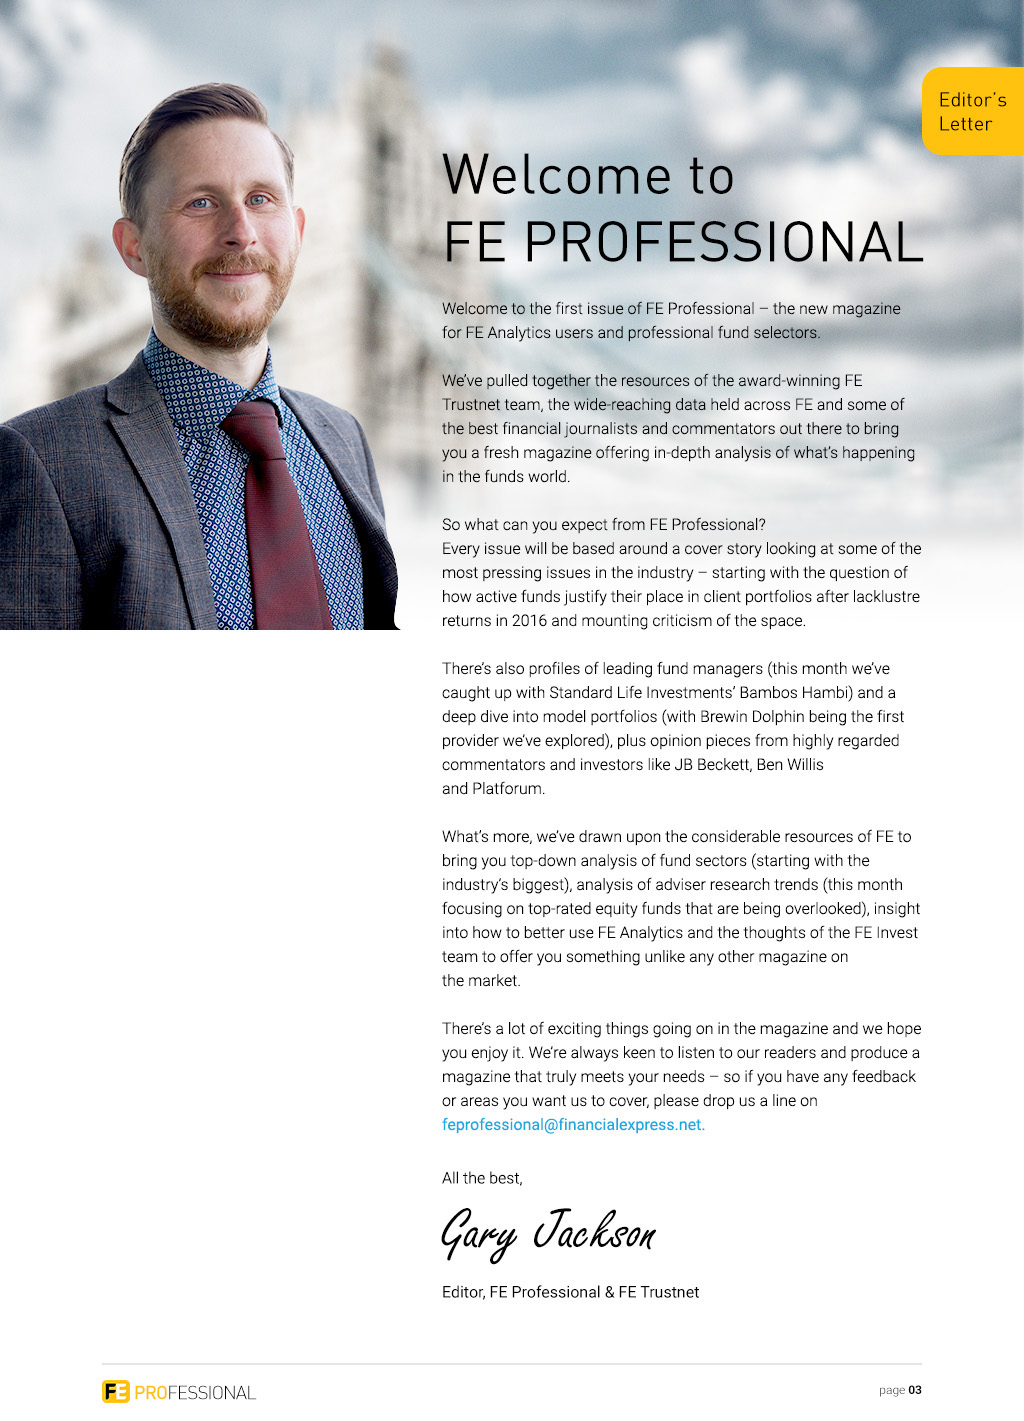 fe professional issue fe analytics trustnet professional all the best